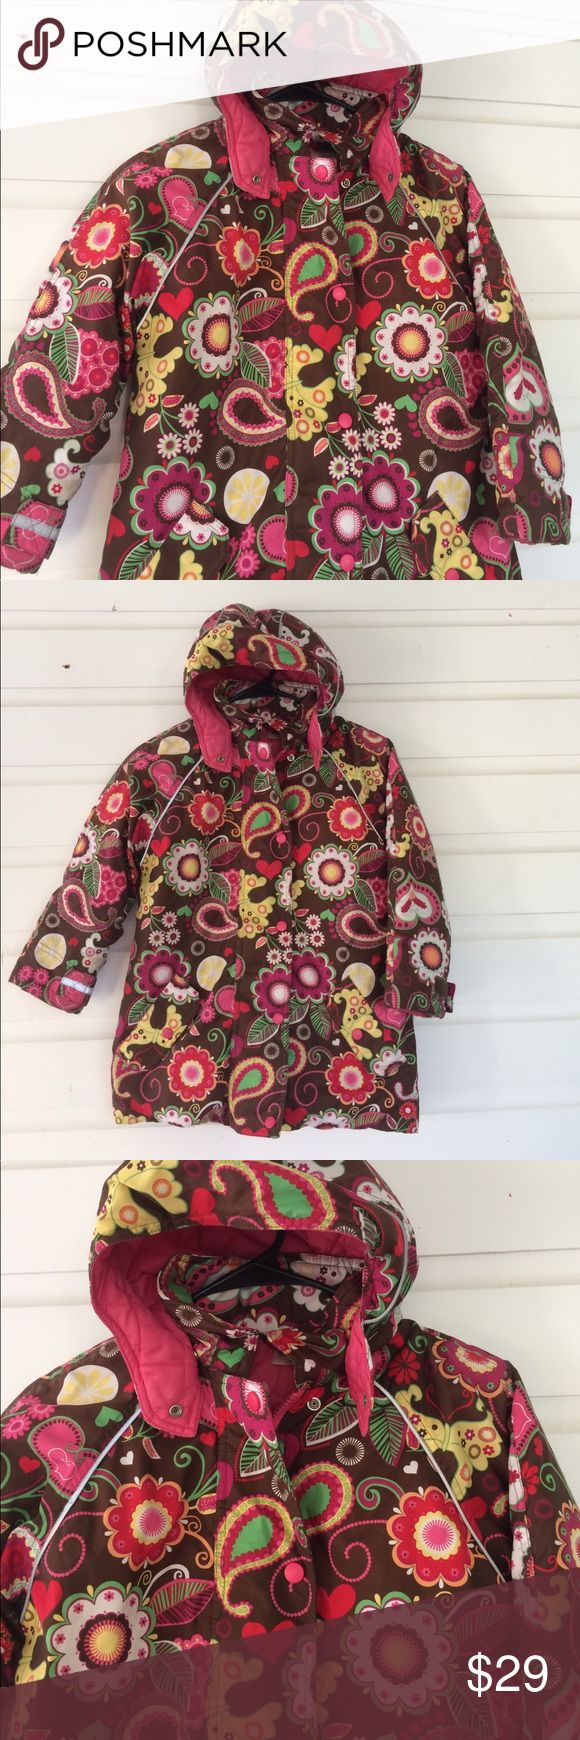 Hanna Andersson Pink Brown Paisley Butterfly Parka Colorful joy! I love Hanna Andersson for their fun plays on color and design. Great for any little feminist in the making, she loves pink (because, yes!) but doesn't bat an eyelash when faced with a huge Lego set. The parka is a winter grime hider! Quilted pink lining. Excellent condition but it has been tagged with name and phone number. Will need to be covered and re-identified. Similar to the Journeys End Jacket. HA Size 120/6-7 Hanna…